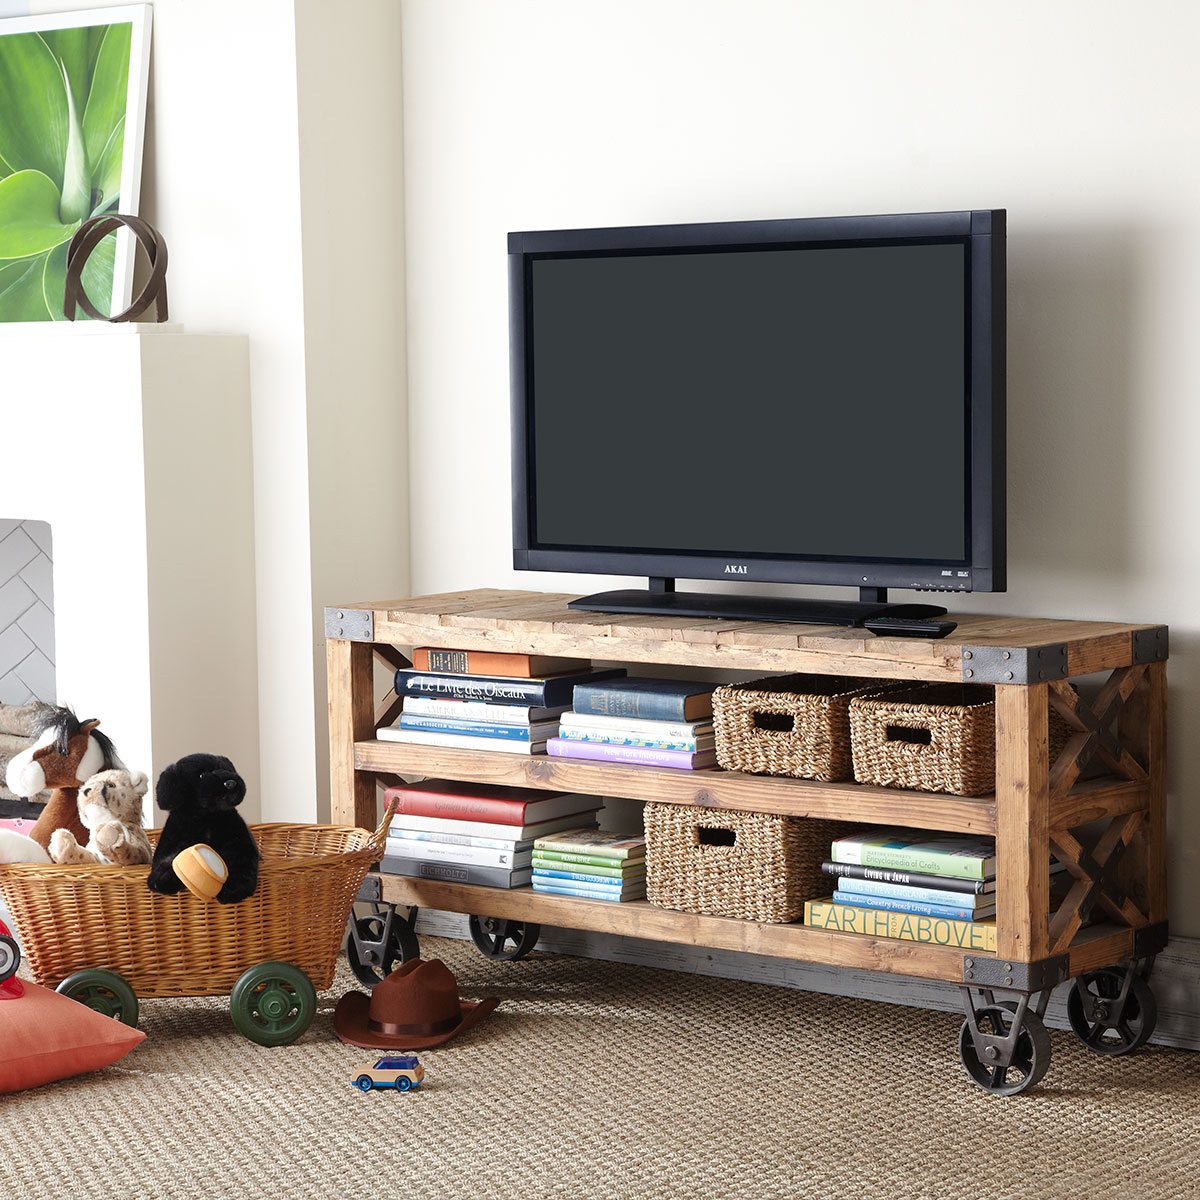 Design Tv Rack Cool Tv Rack With Tv Rack With Design Tv Rack How To Choose A Tv Stand